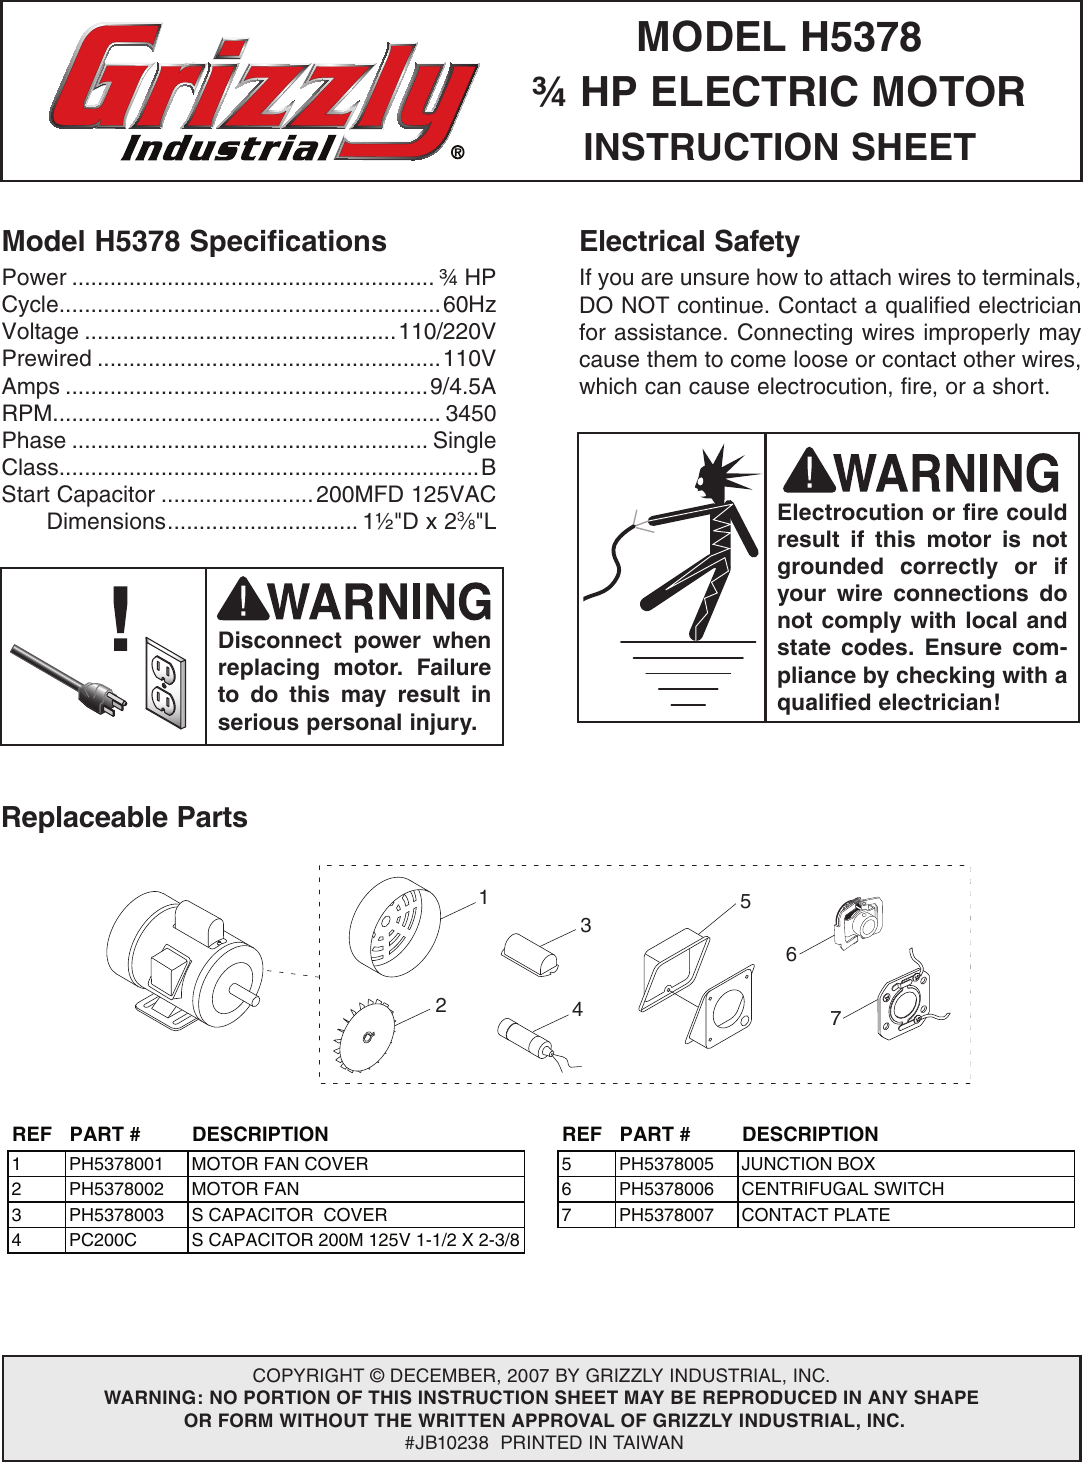 Grizzly H5378 Wiring Diagram User Manual 66c57519 9011 4722 8b64 Industrial Switch Bd7f73132b60